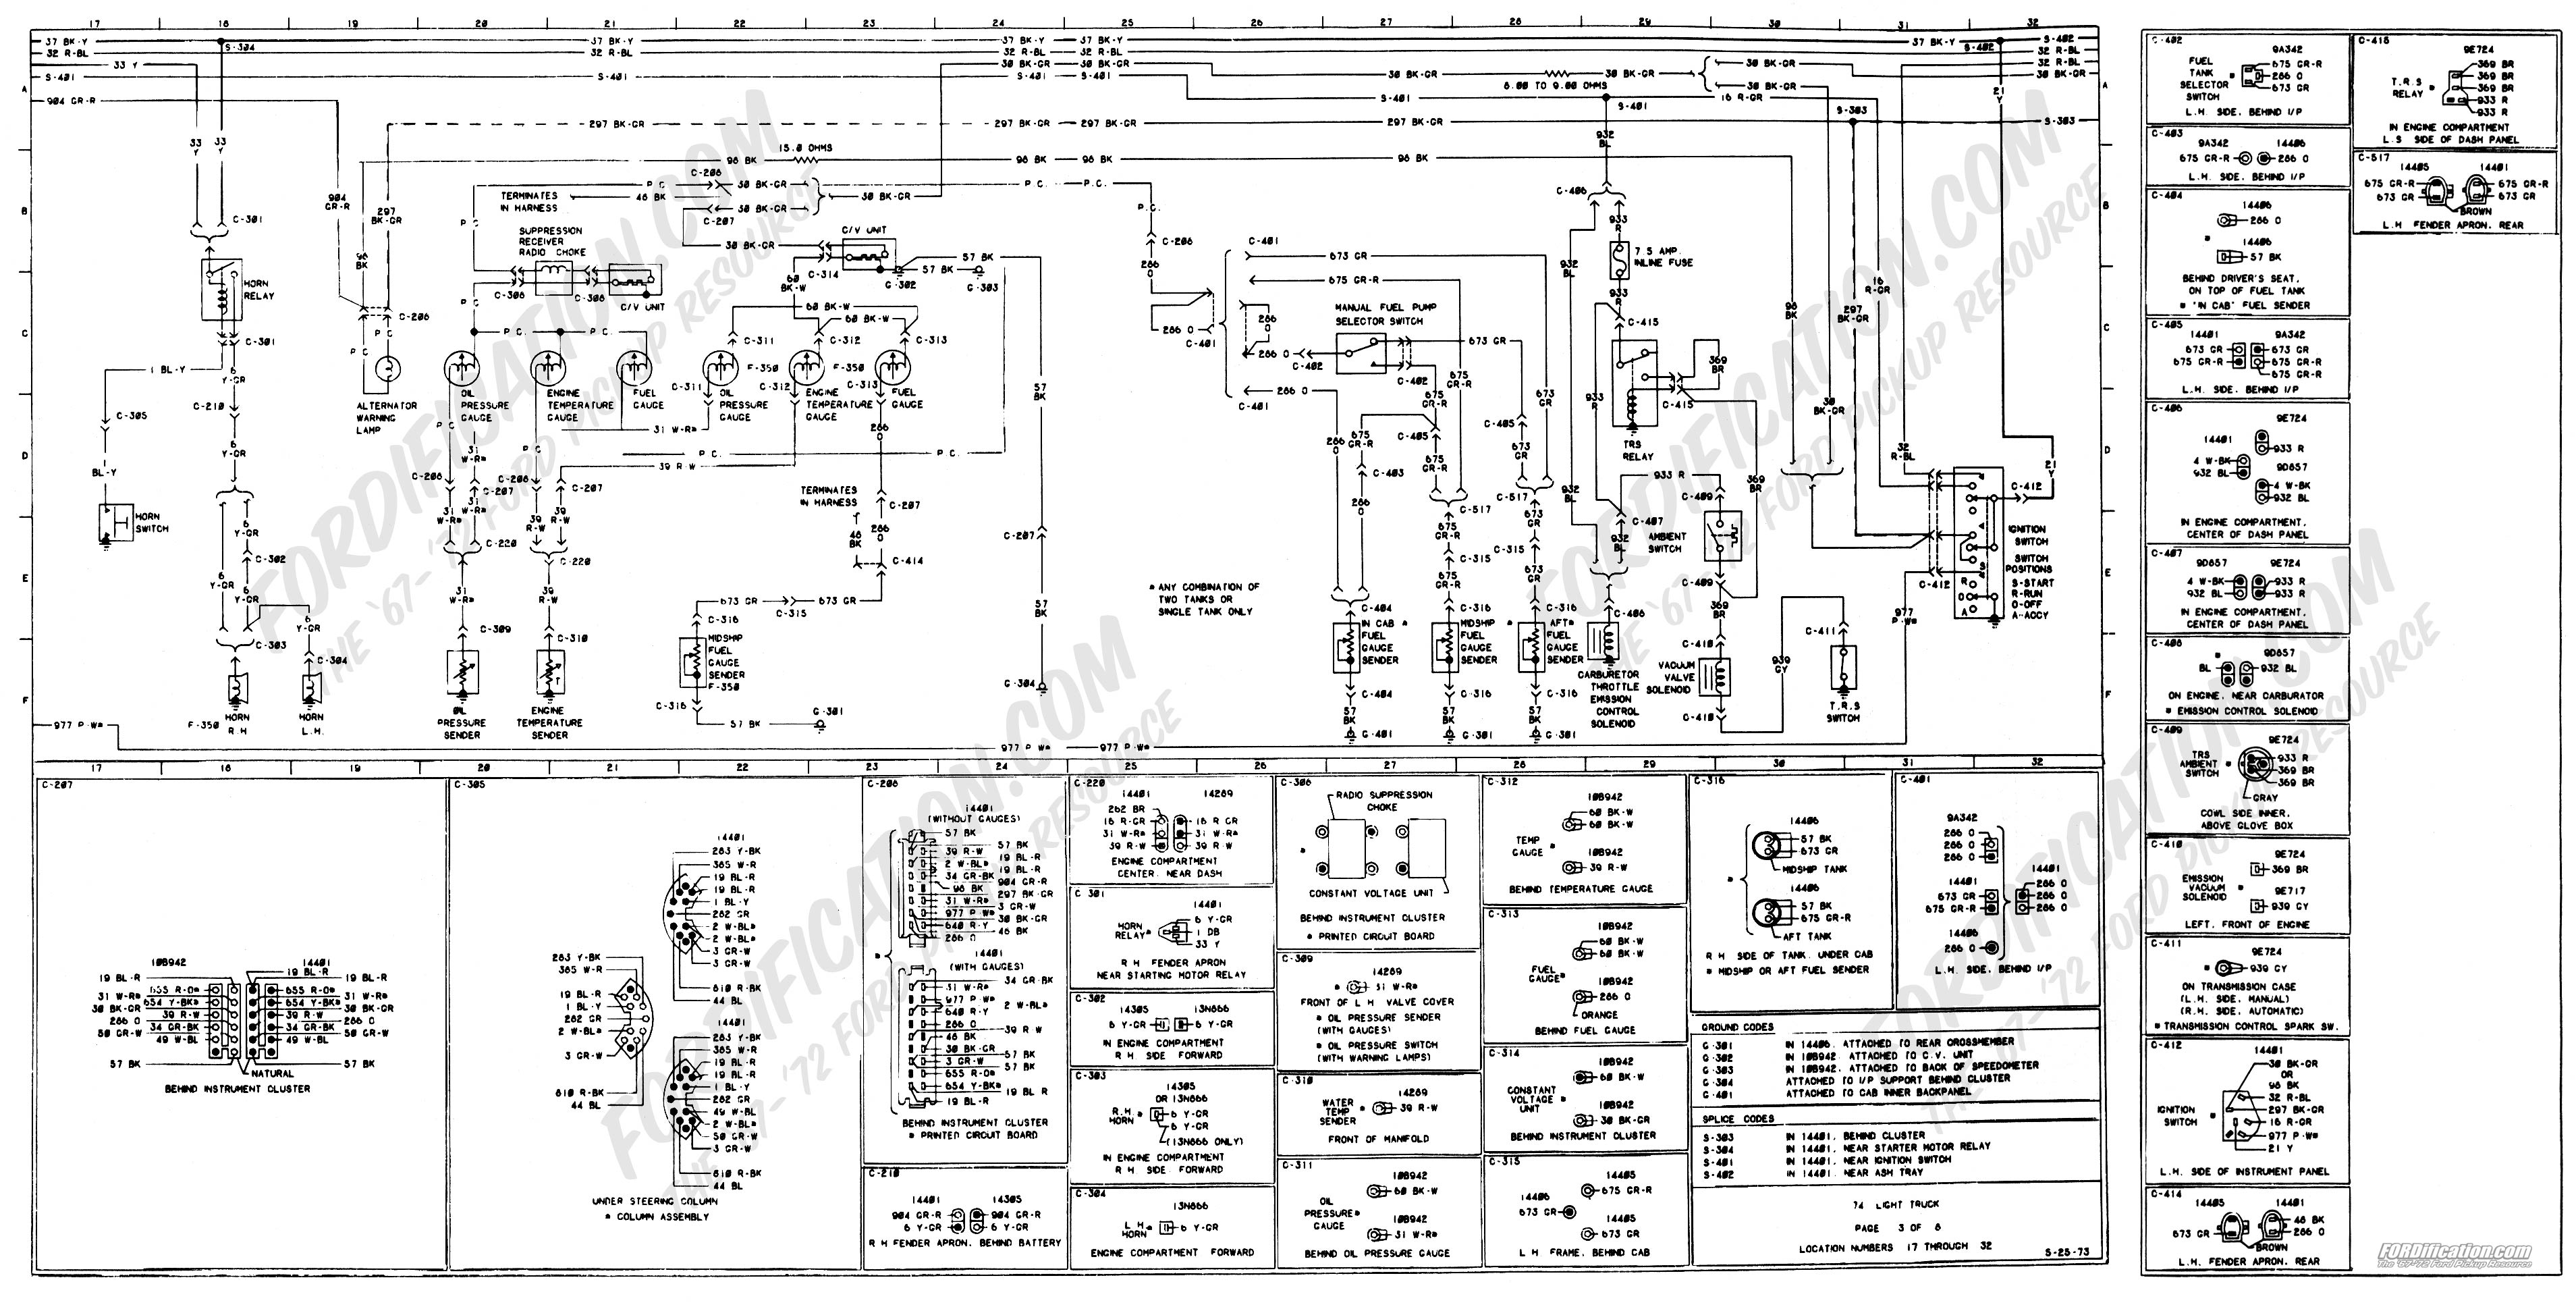 1973 1979 ford truck wiring diagrams schematics fordification net rh fordification net ford f100 wiring diagram 1972 1969 ford f100 wiring diagram